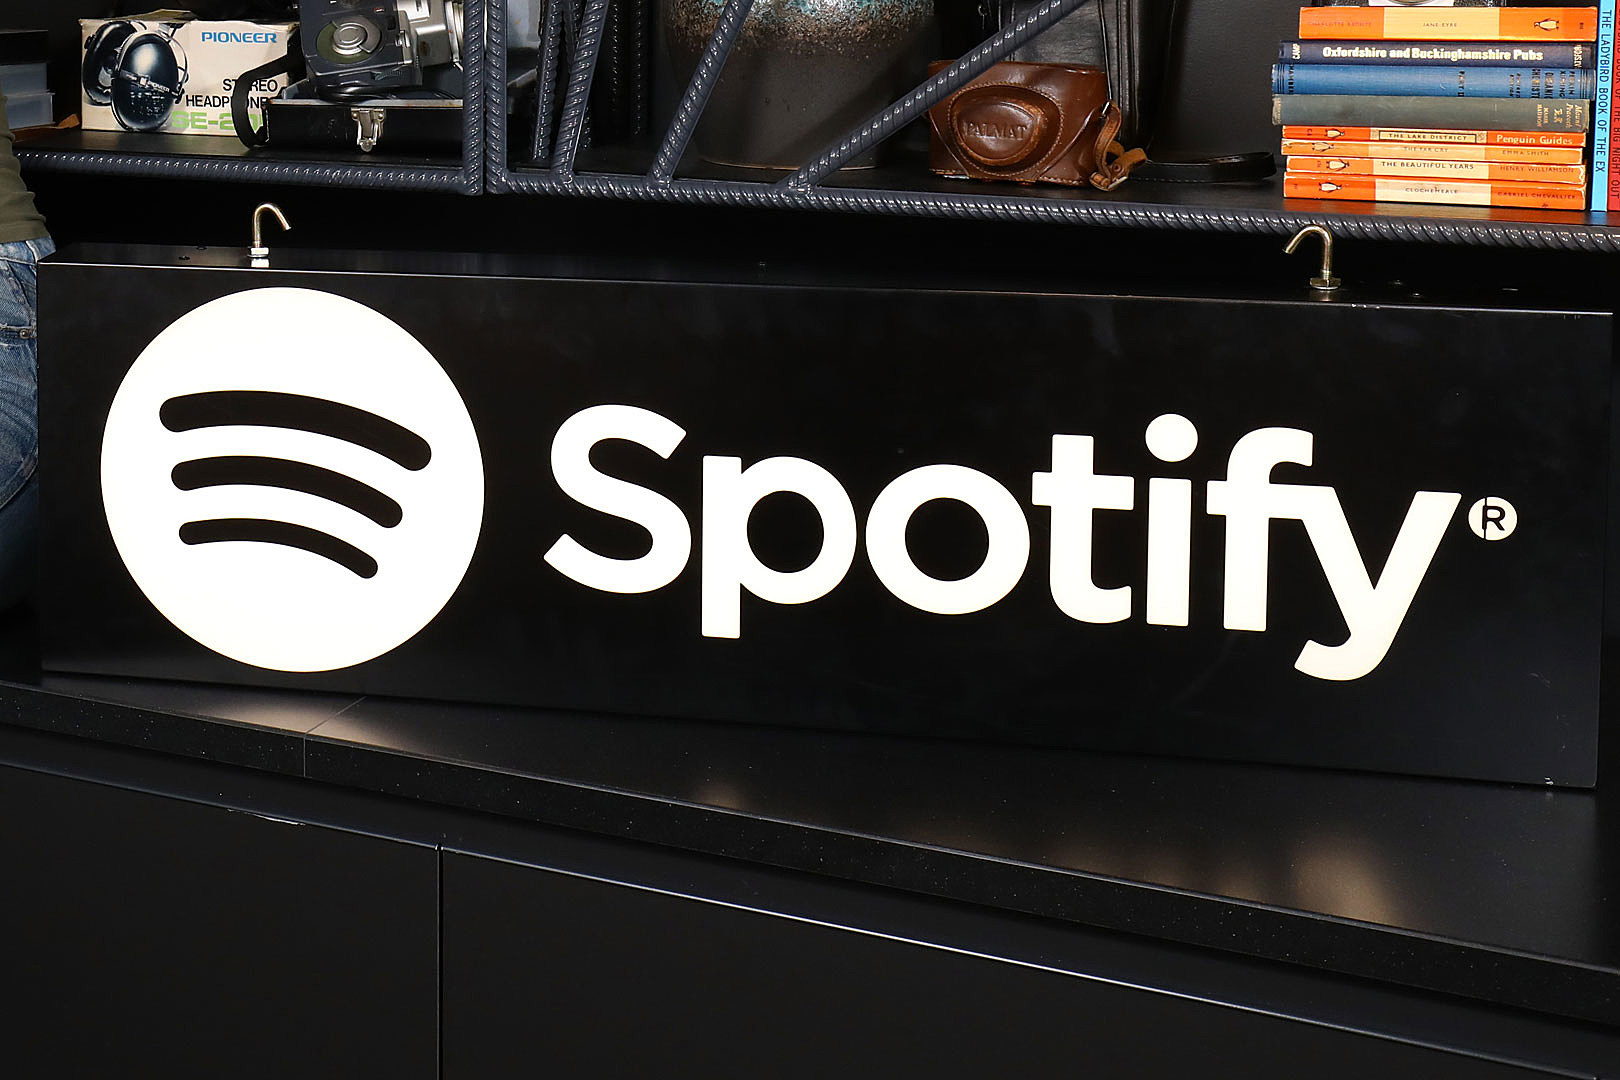 Spotify Working on AI Tech to Help Songwriters Avoid Plagiarism